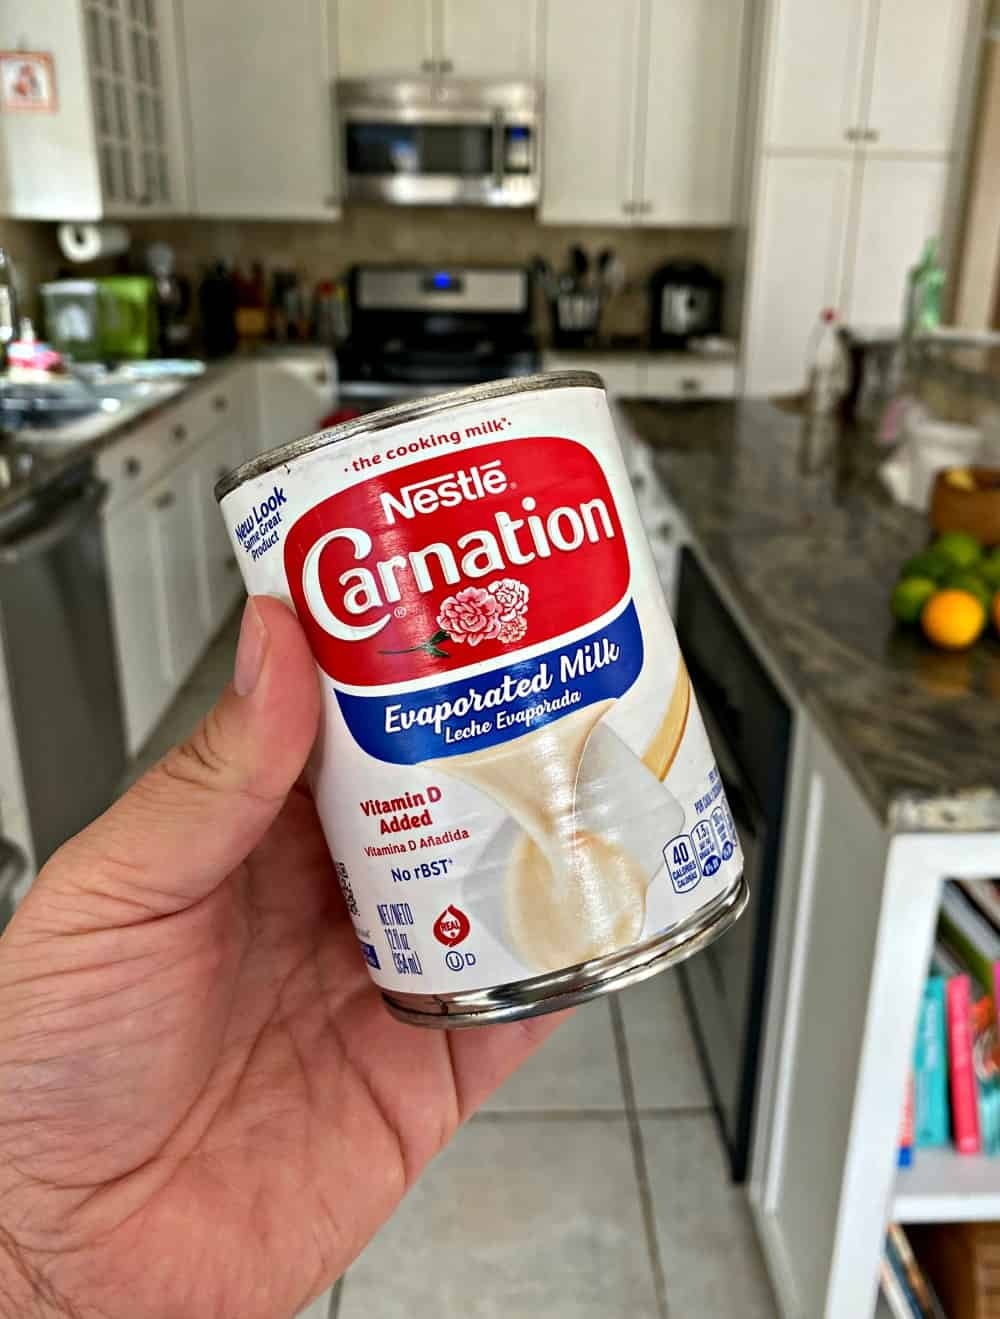 A hand holding a can of Carnation Evaporated Milk in a kitchen.